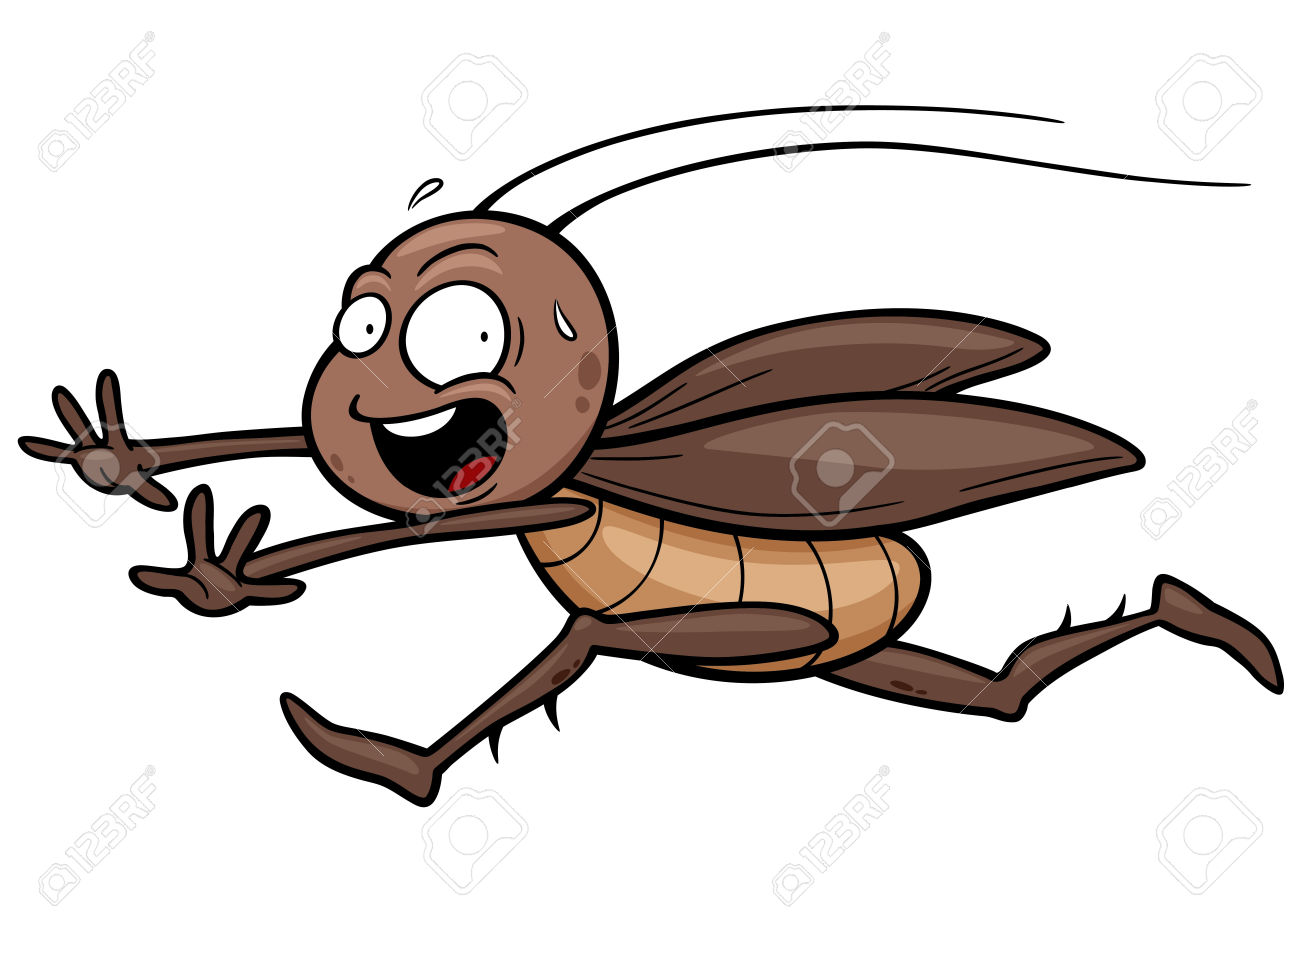 1300x975 Cartoon Clipart Cockroach